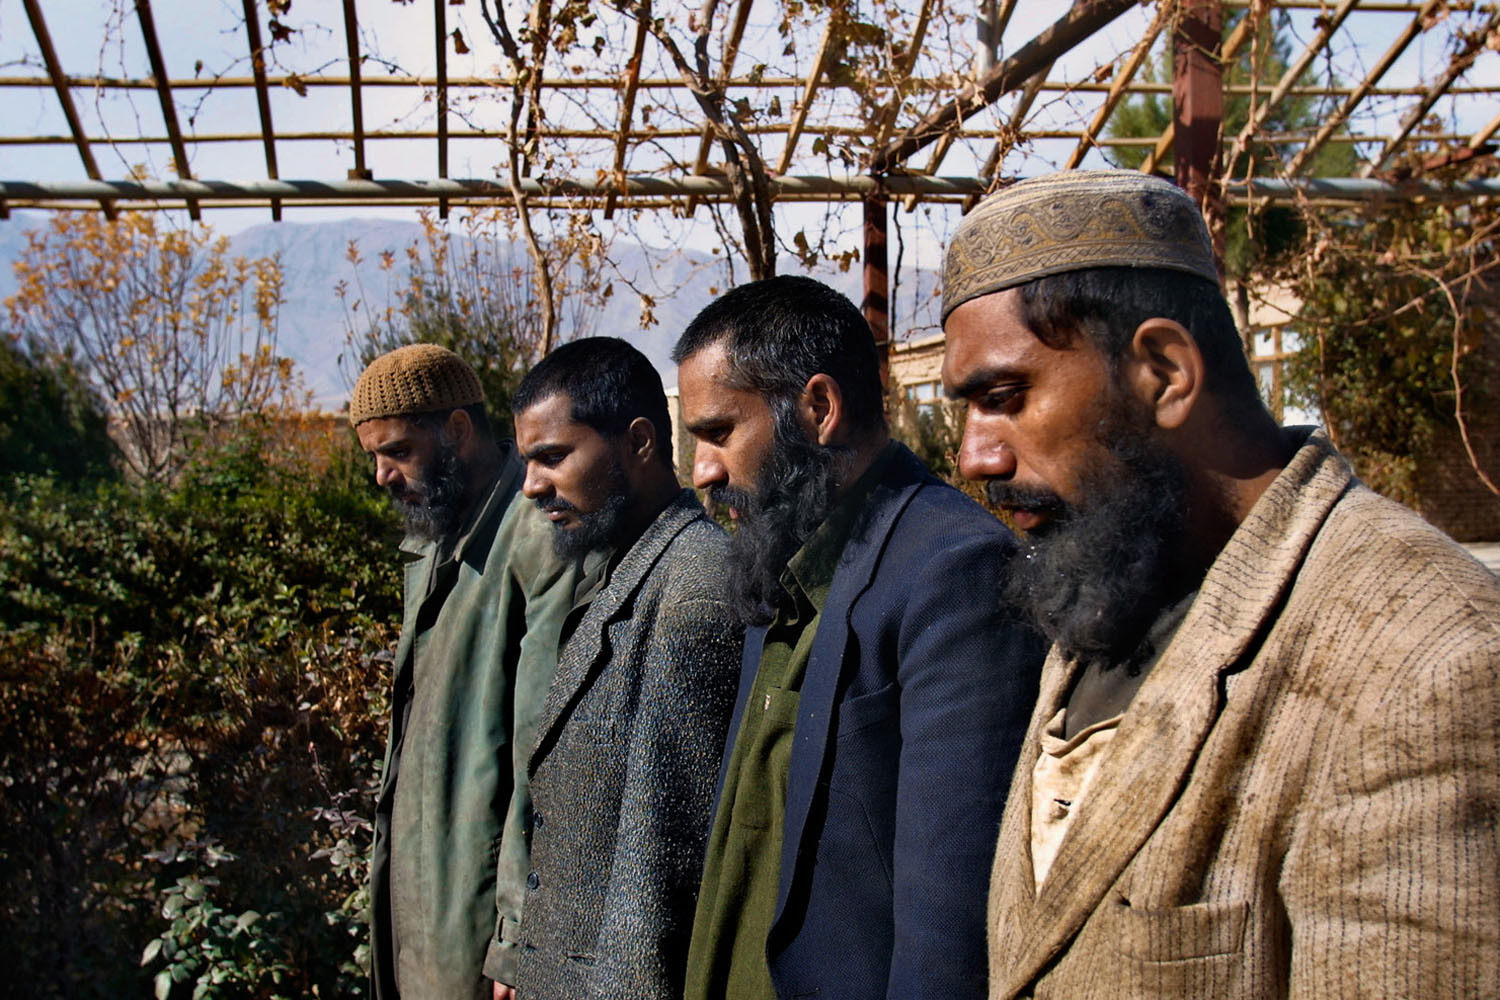 Pakistani Taliban prisoners are interviewed after being captured outside of Kabul while fighting Northern Alliance troops. December, 2001